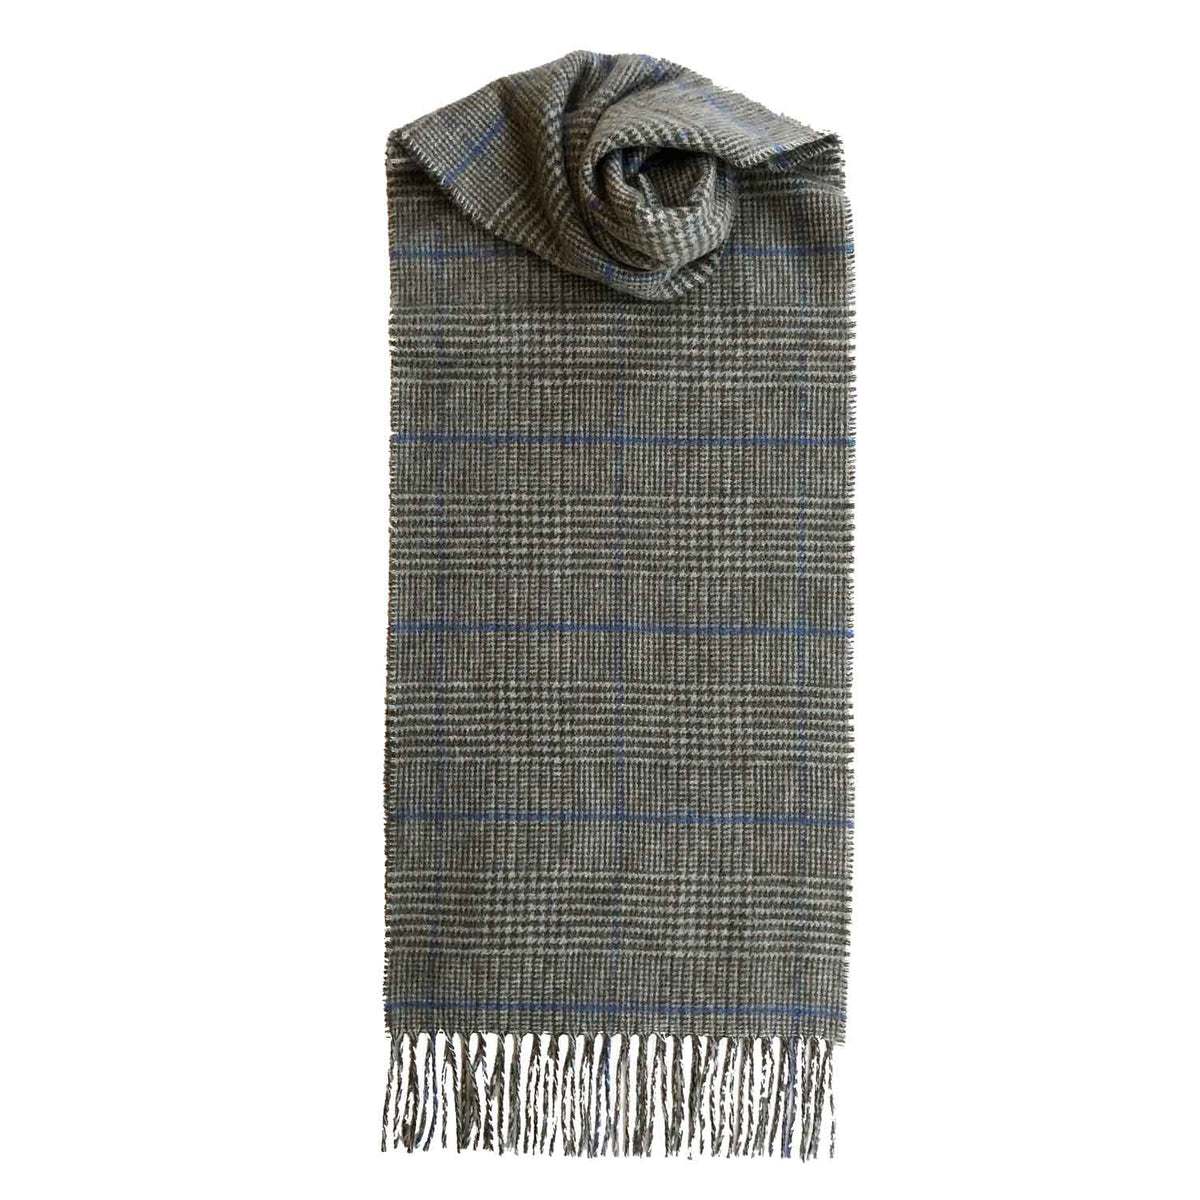 Lomond Cashmere | Brown Blue | Check Cashmere Scarf With Fringes | Made in Scotland | Shop at The Cashmere Choice | London